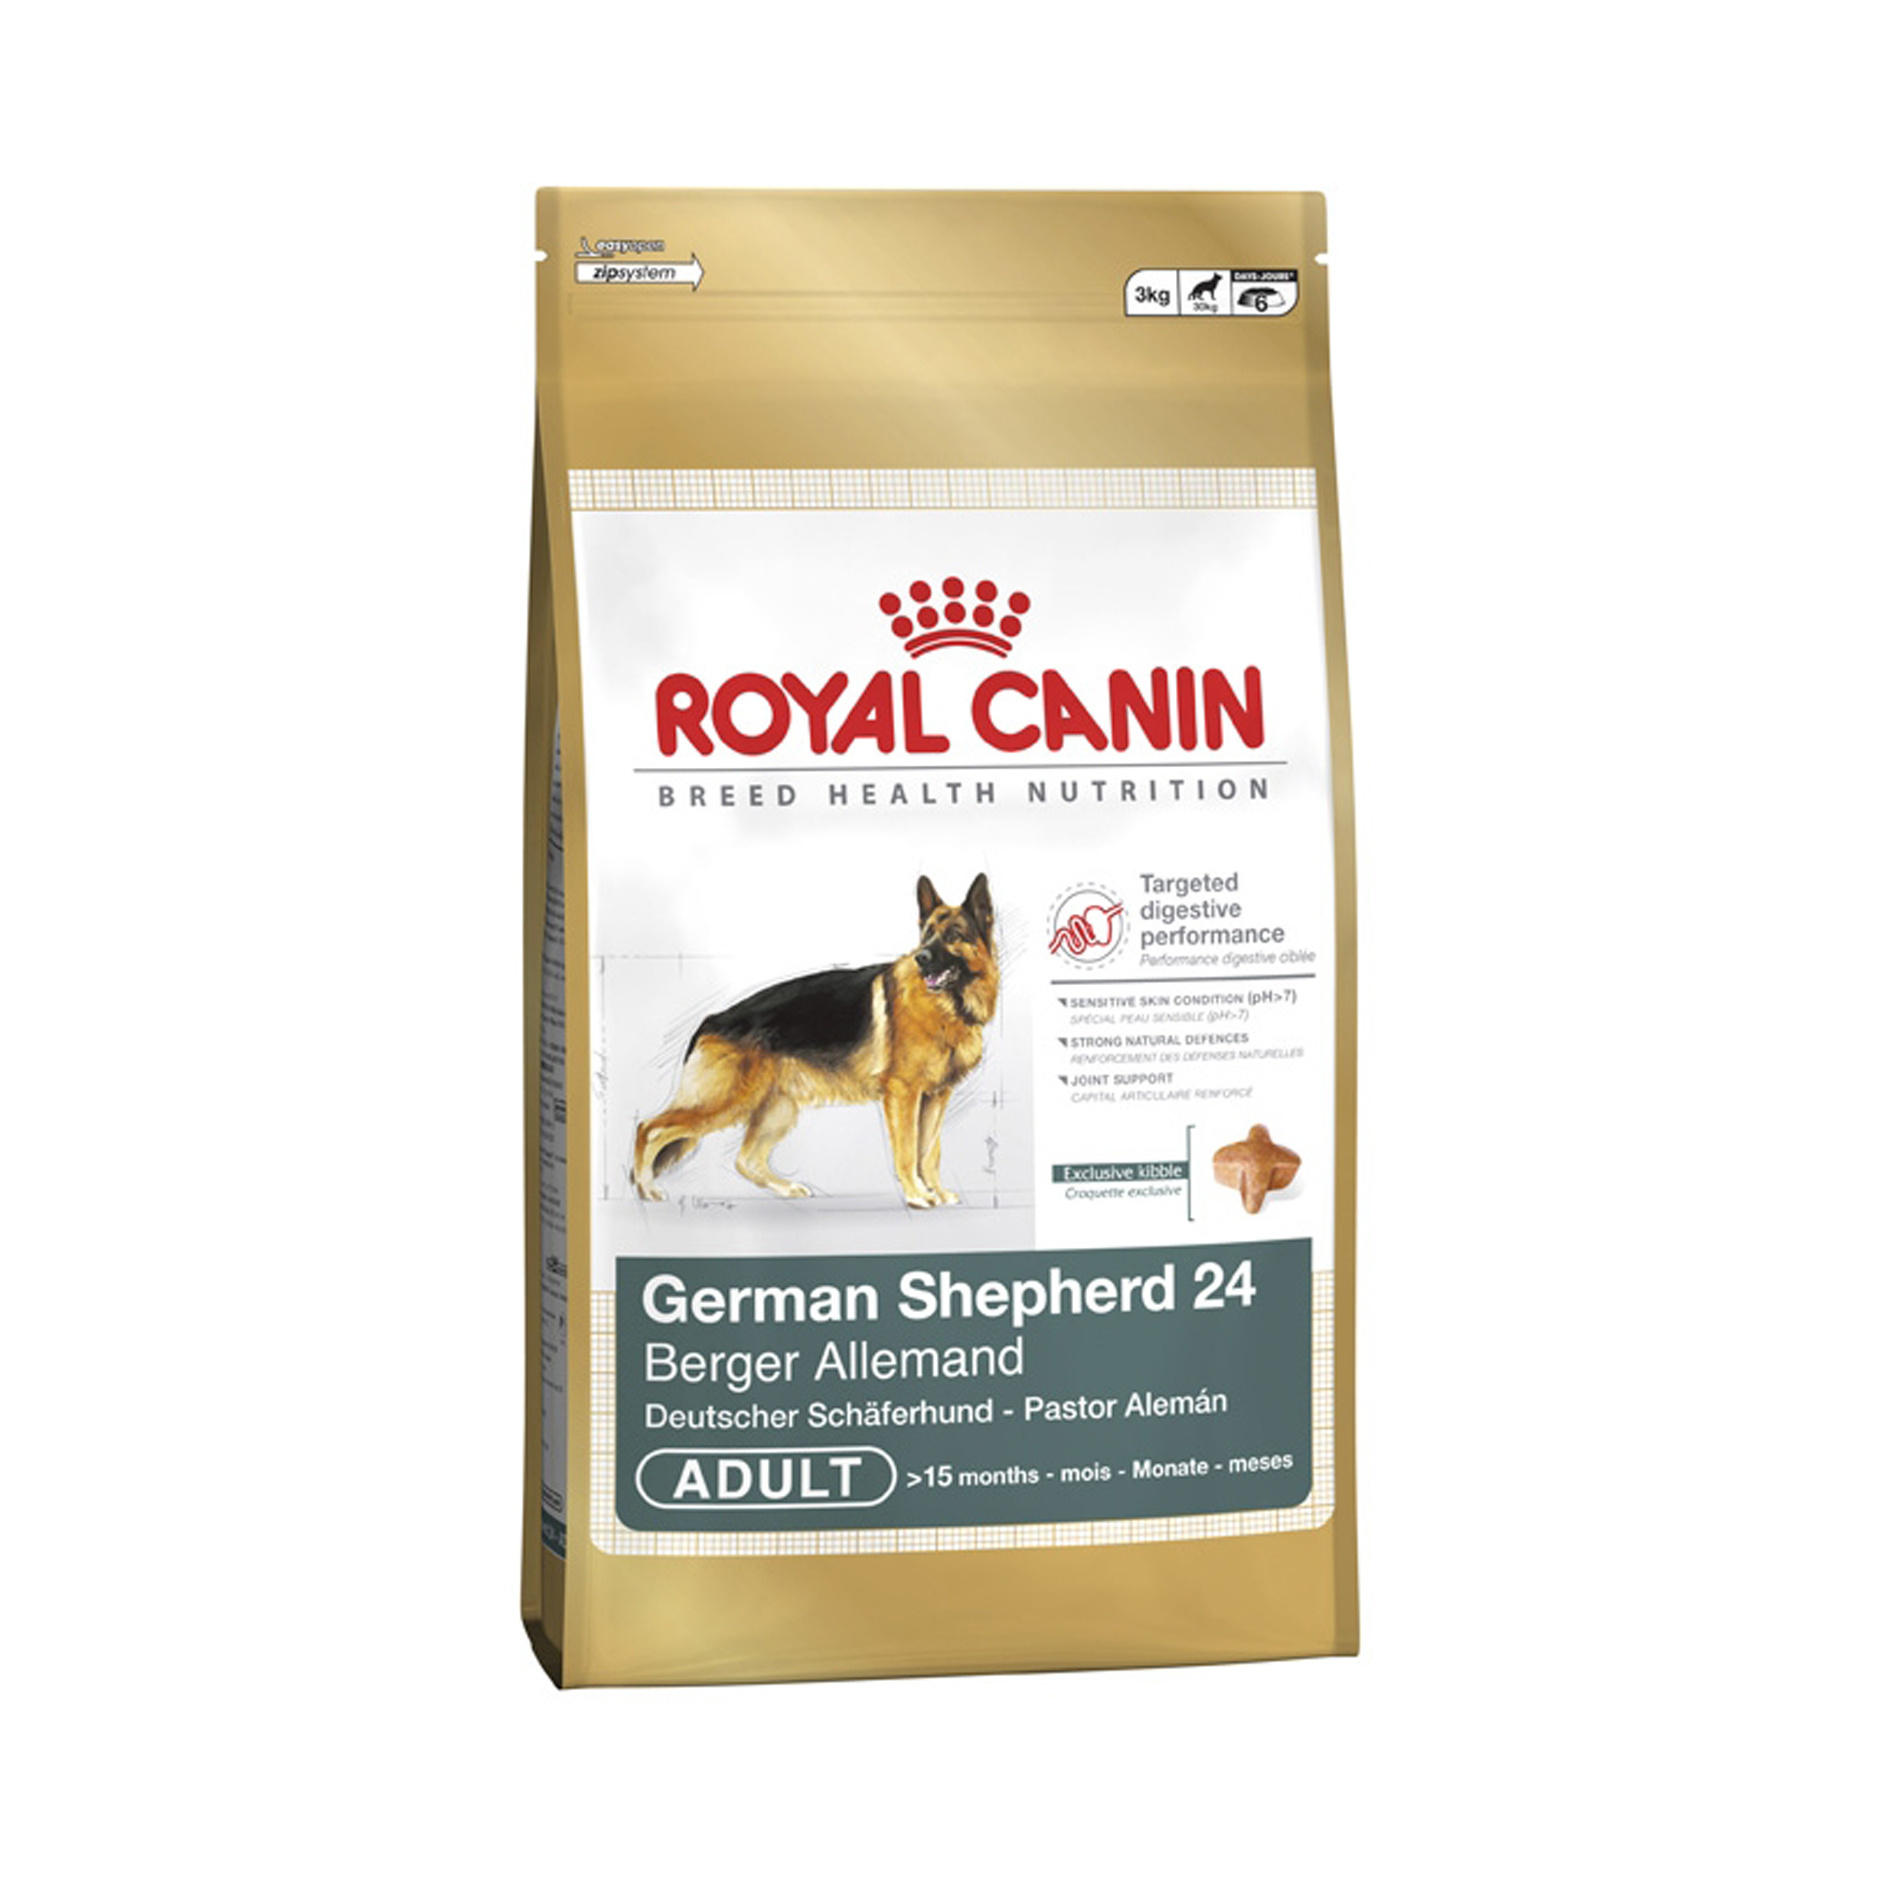 Royal Canin Breed Health Nutrition German Shepherd Adult 24